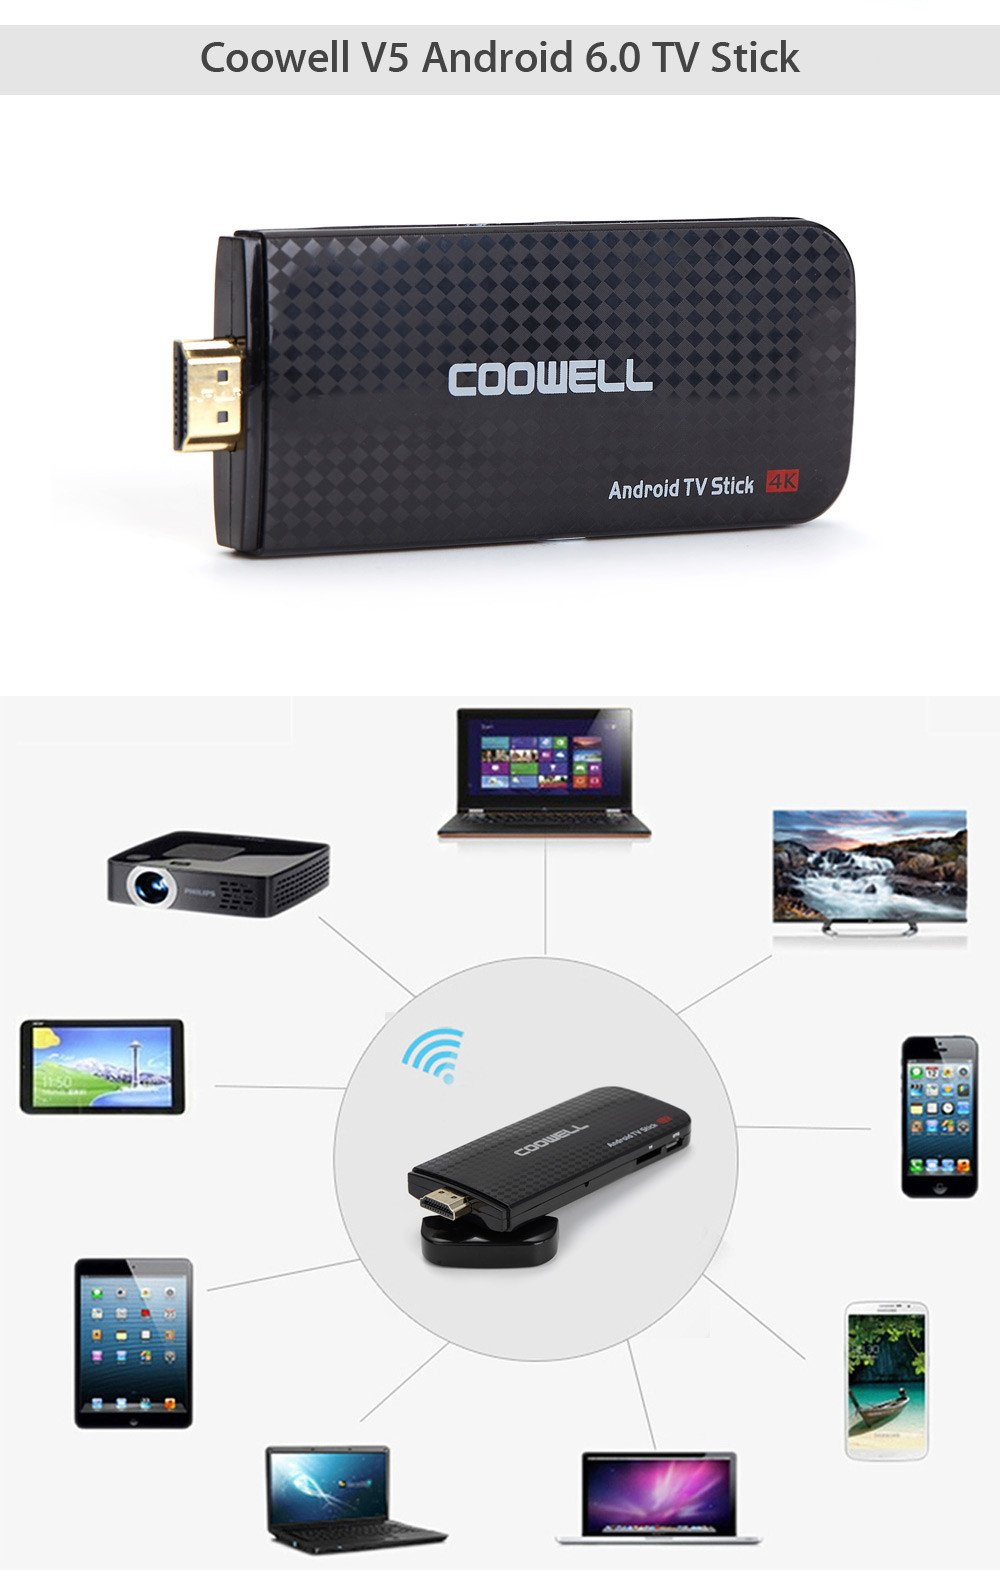 Рис. 25. Coowell V5 Android 6.0 TV Stick